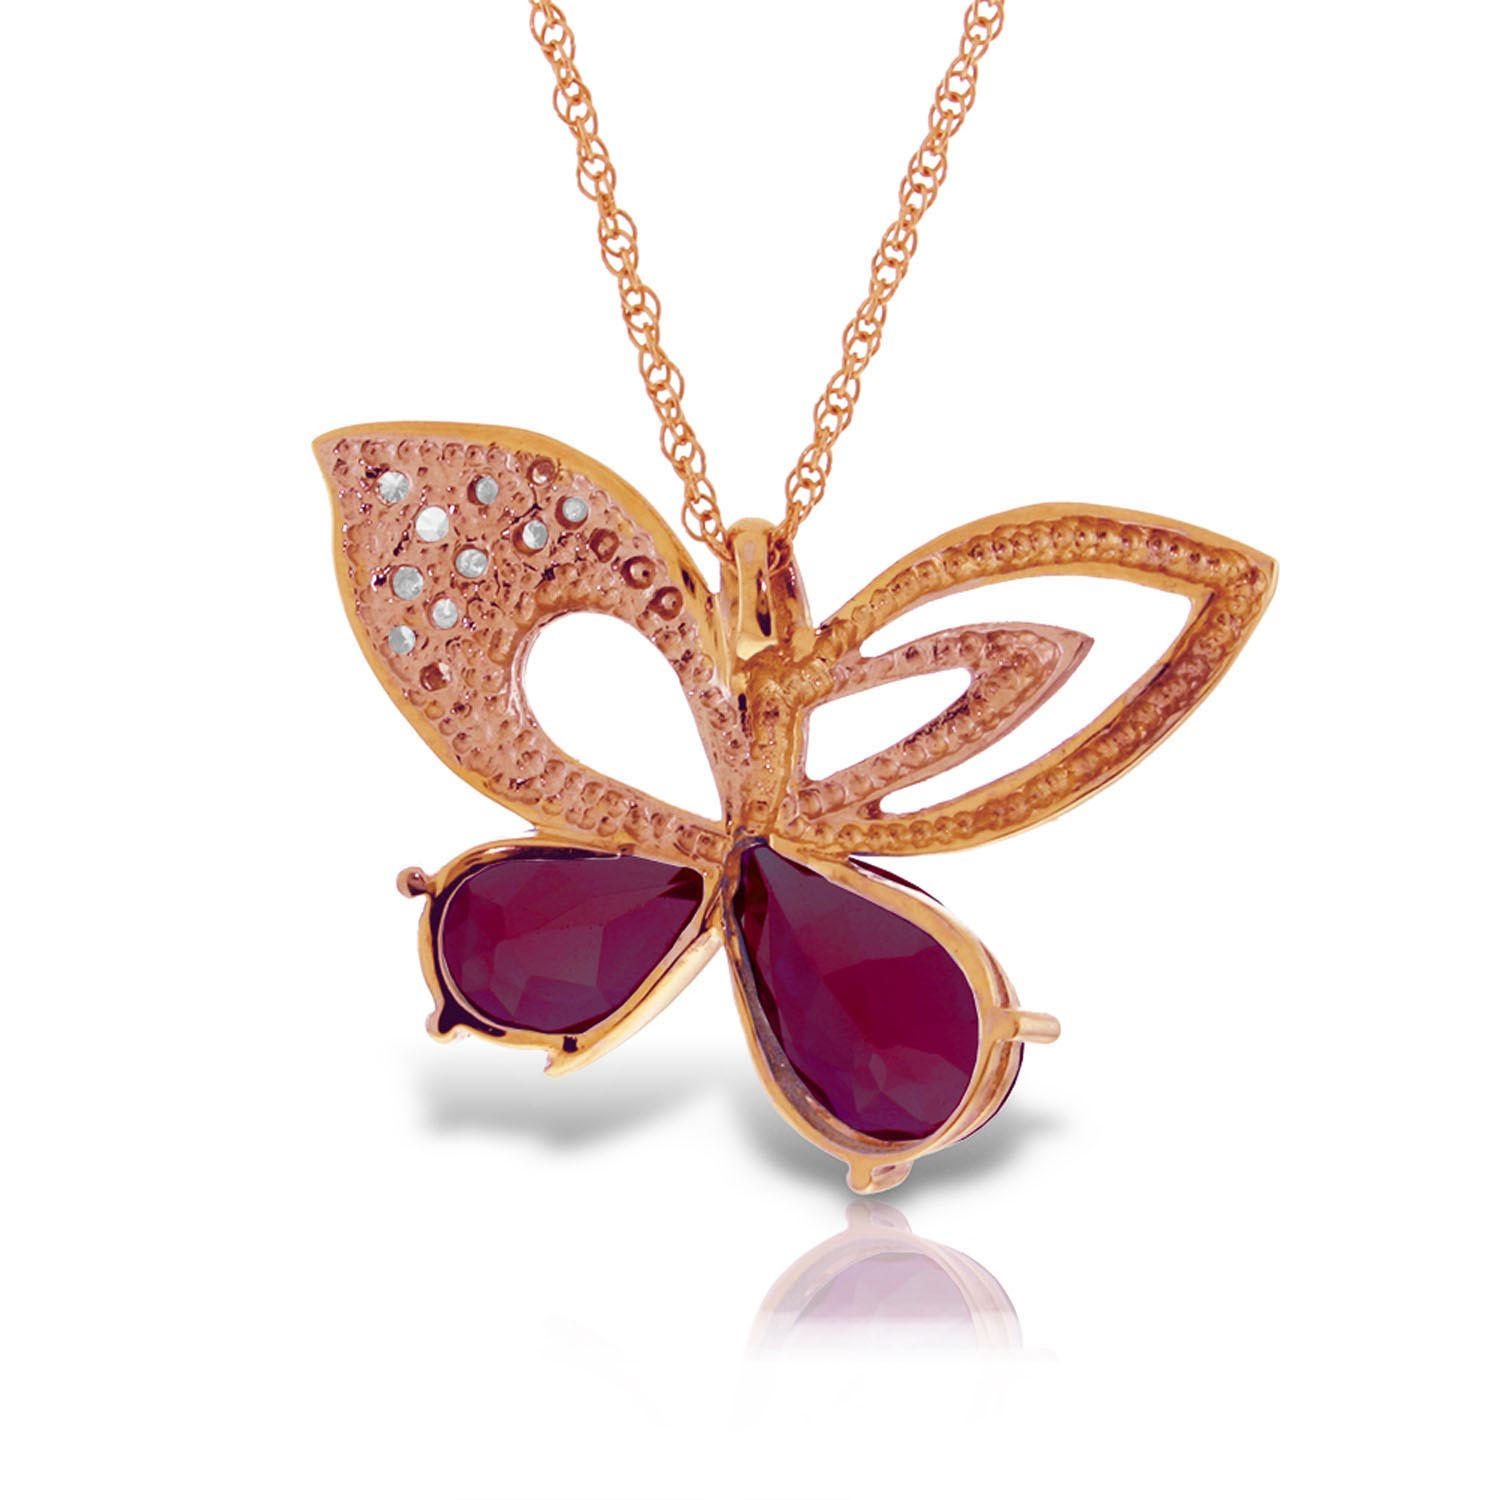 Ruby and Diamond Butterfly Pendant Necklace 4.2ctw in 14K Rose Gold